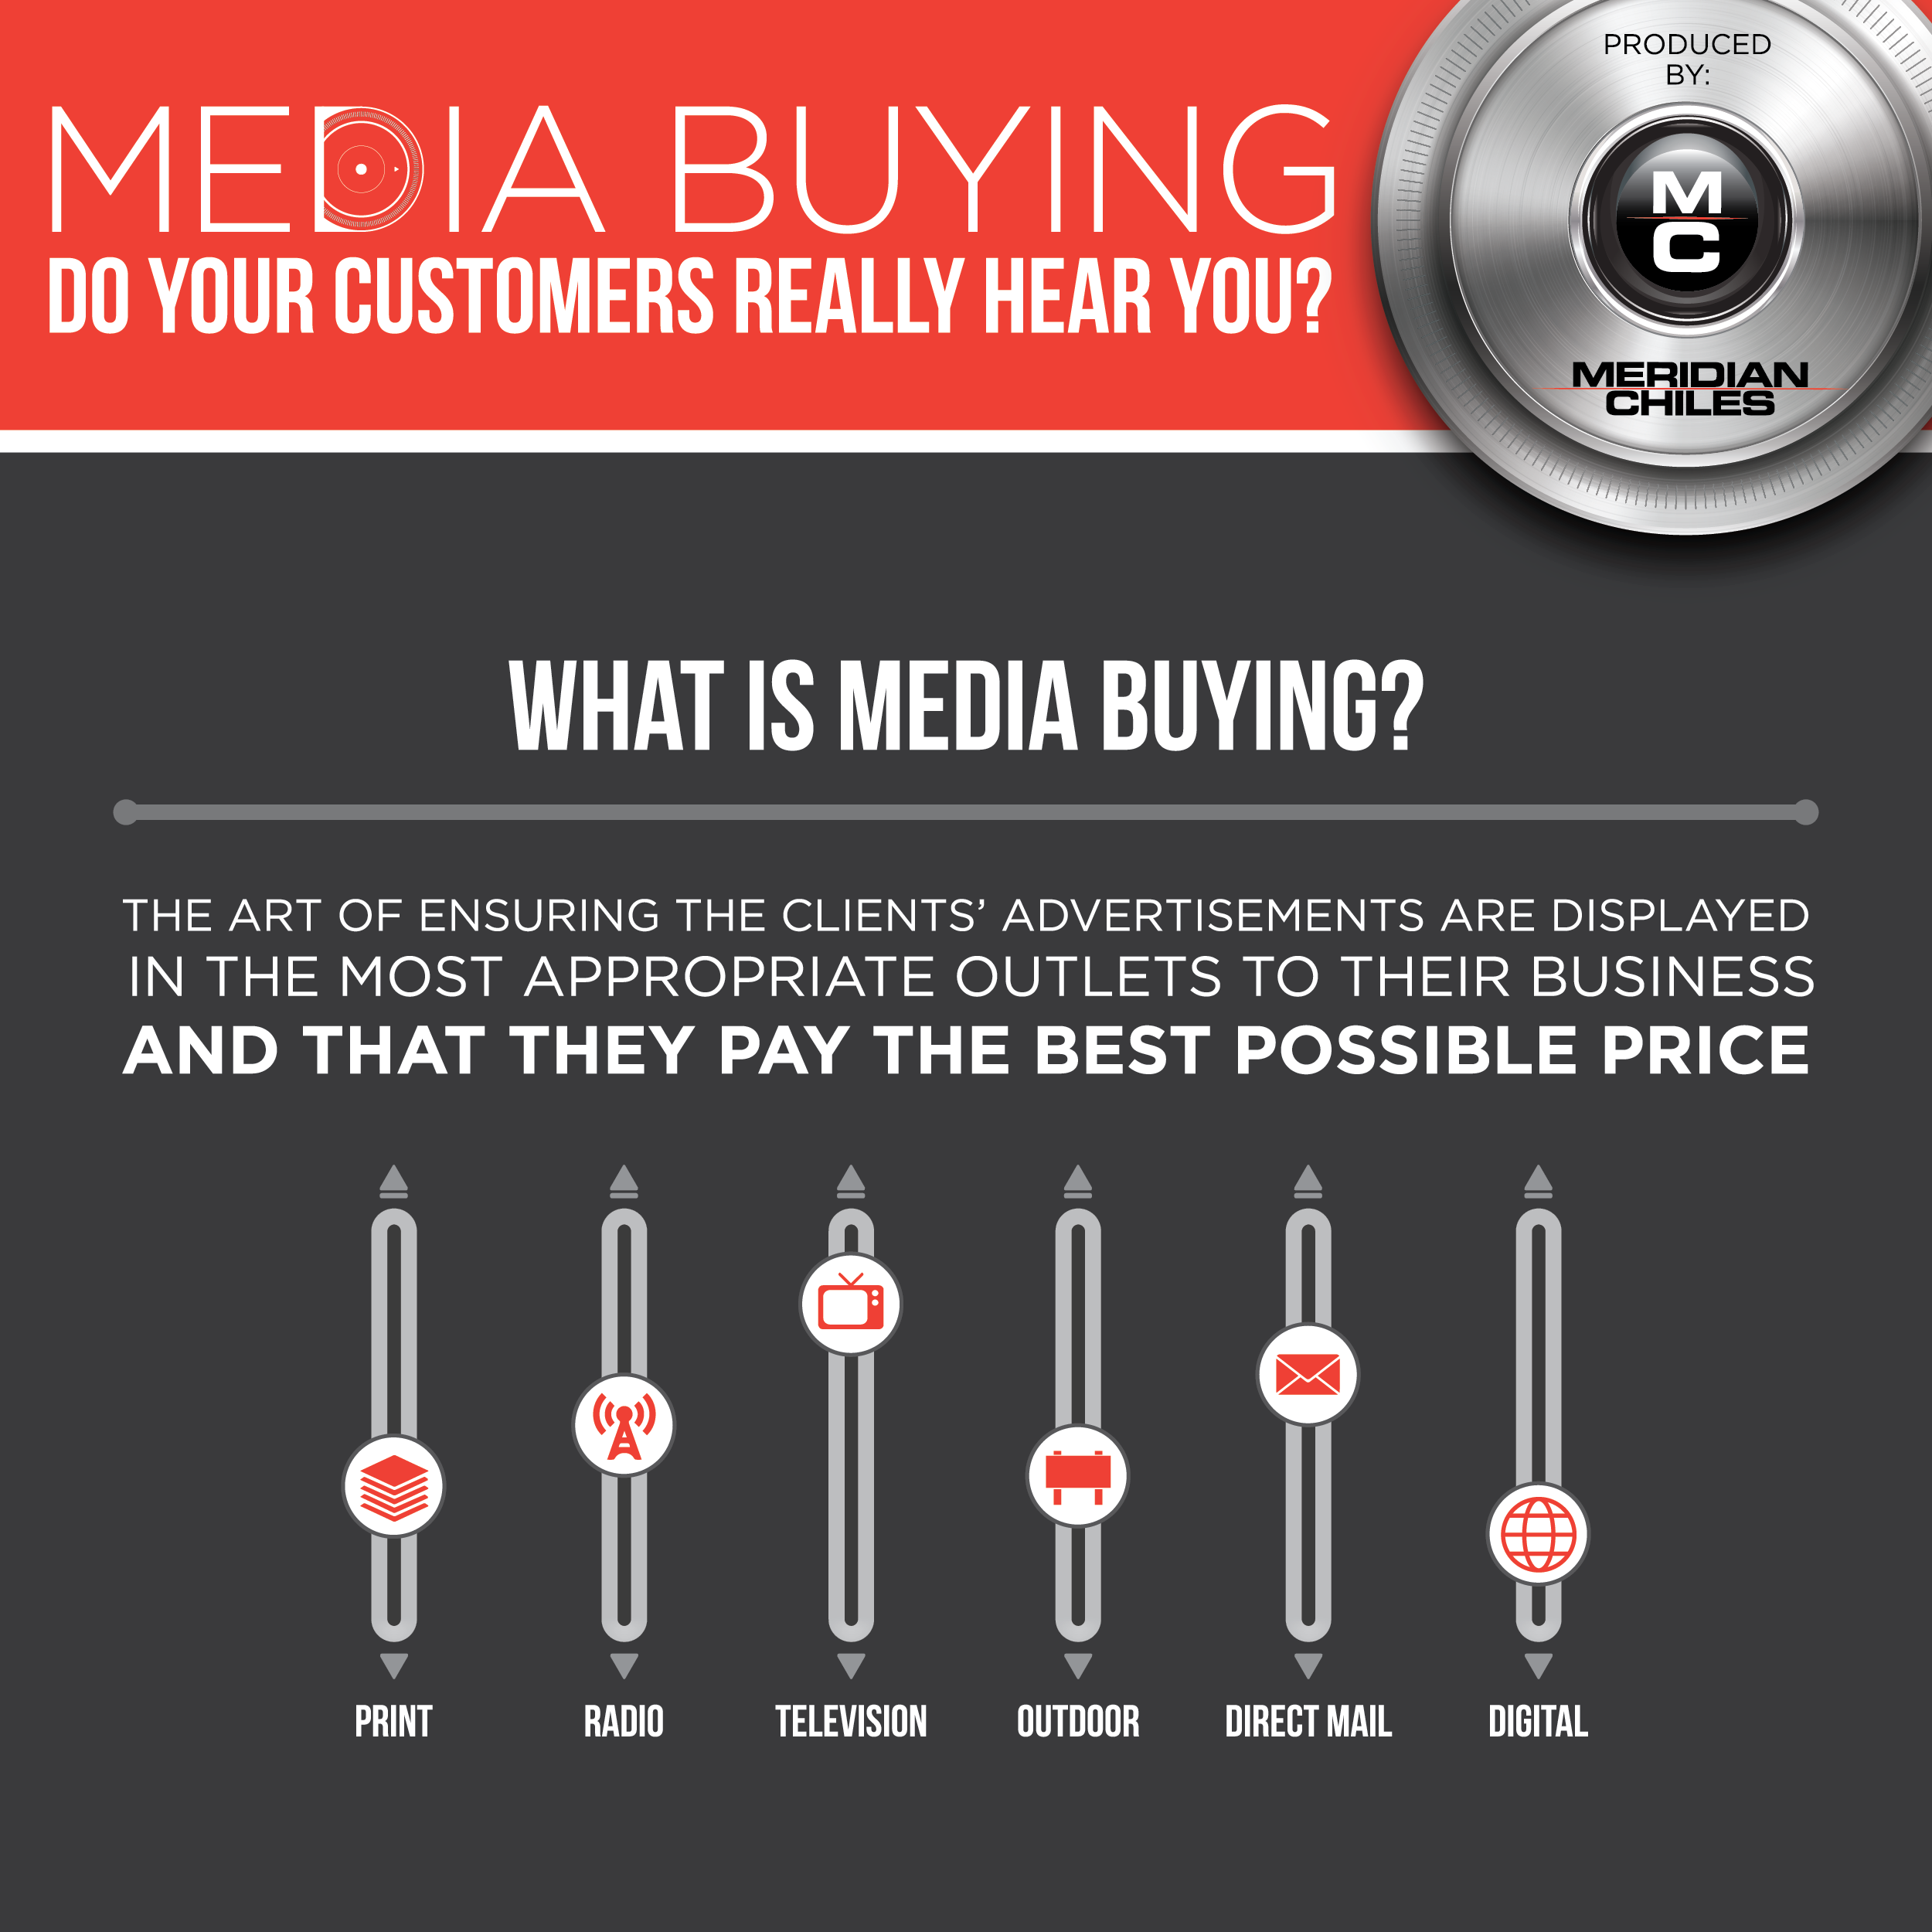 Any top advertising agency knows the importance of media buying for their clients, and you should too. In today's market, businesses must make sure their advertisements reach the right consumers. Professional media buyers have the skills and resources to strategically place ads in the optimal mediums.  For more information on what media buying is and how it can improve your market reach, contact Meridian-Chiles.